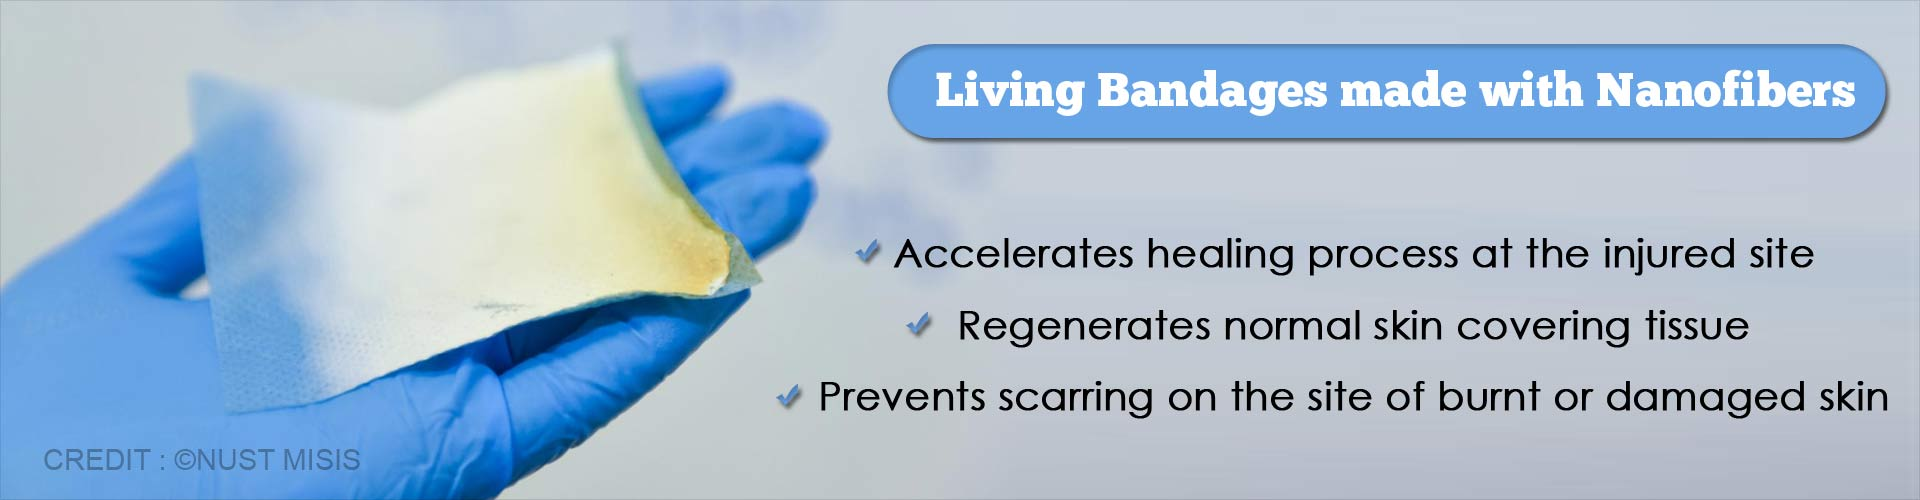 living bandages made with nanofibers